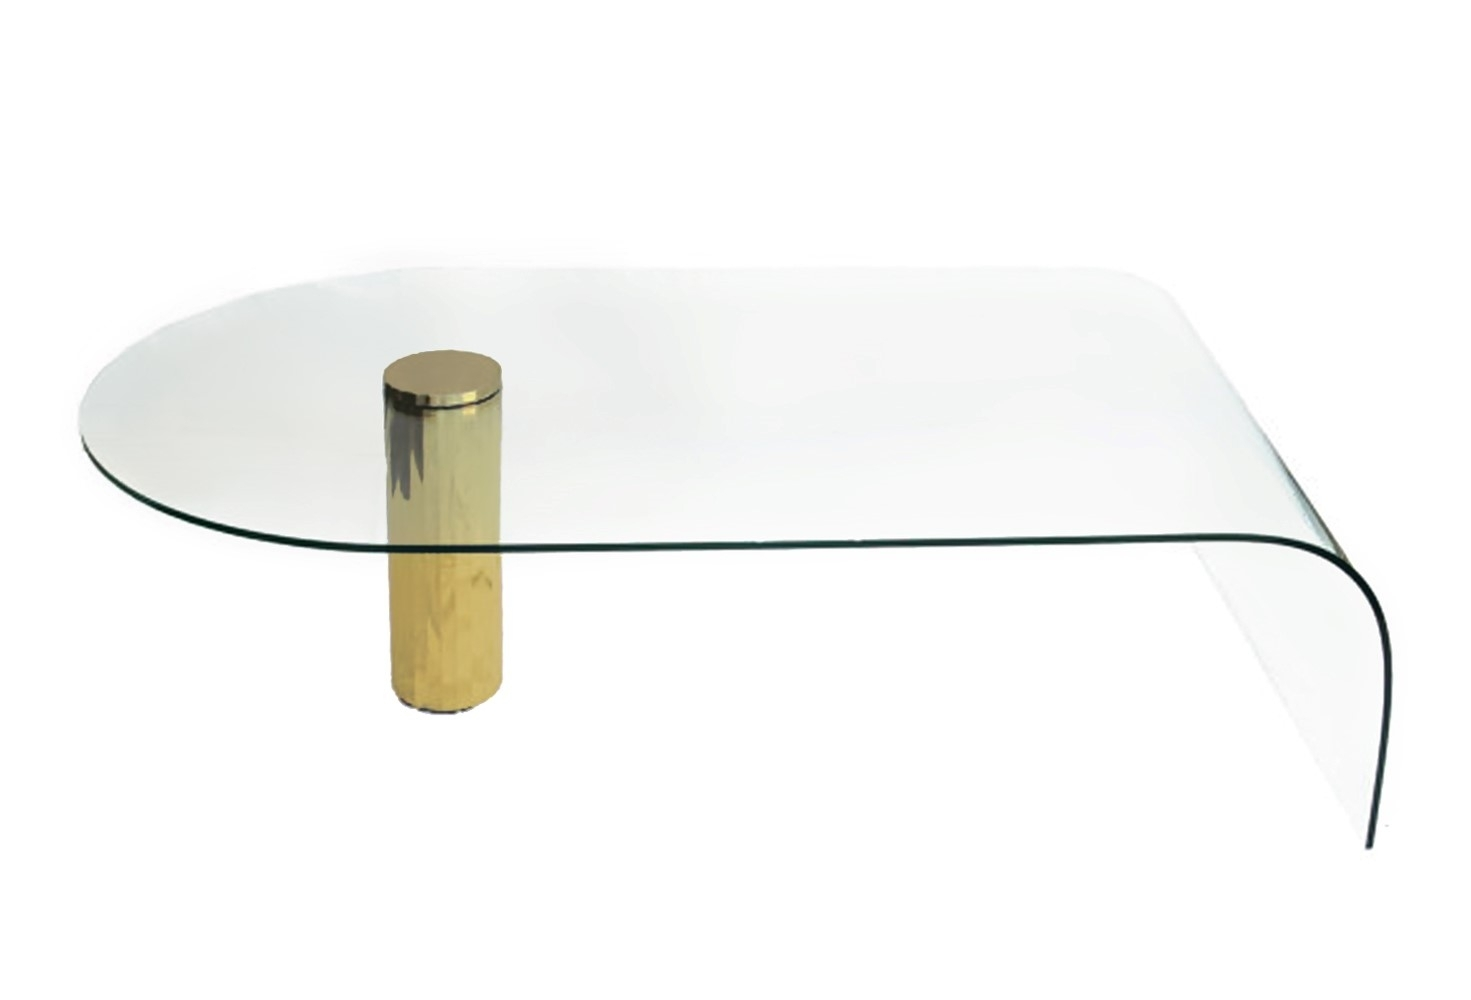 Clear Minimalist Contemporary Glass Waterfall Coffee Table With throughout Waterfall Coffee Tables (Image 6 of 30)